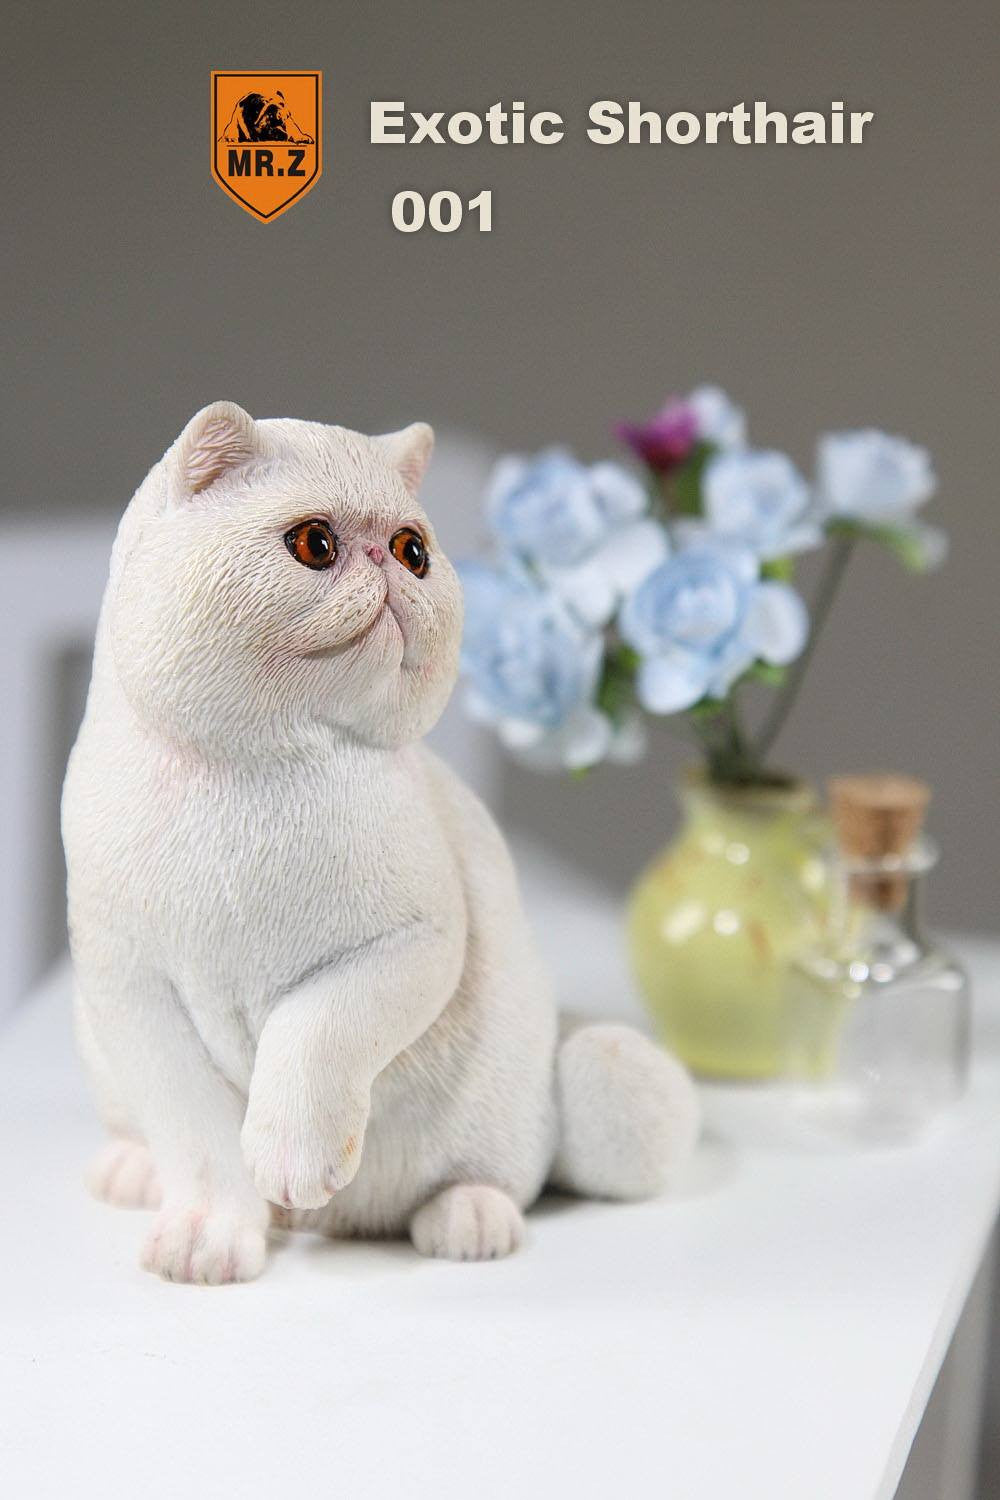 MR.Z - Real Animal Series No.8 - 1/6th Scale Exotic Shorthair Cat (Garfield) 001-005 - Marvelous Toys - 8